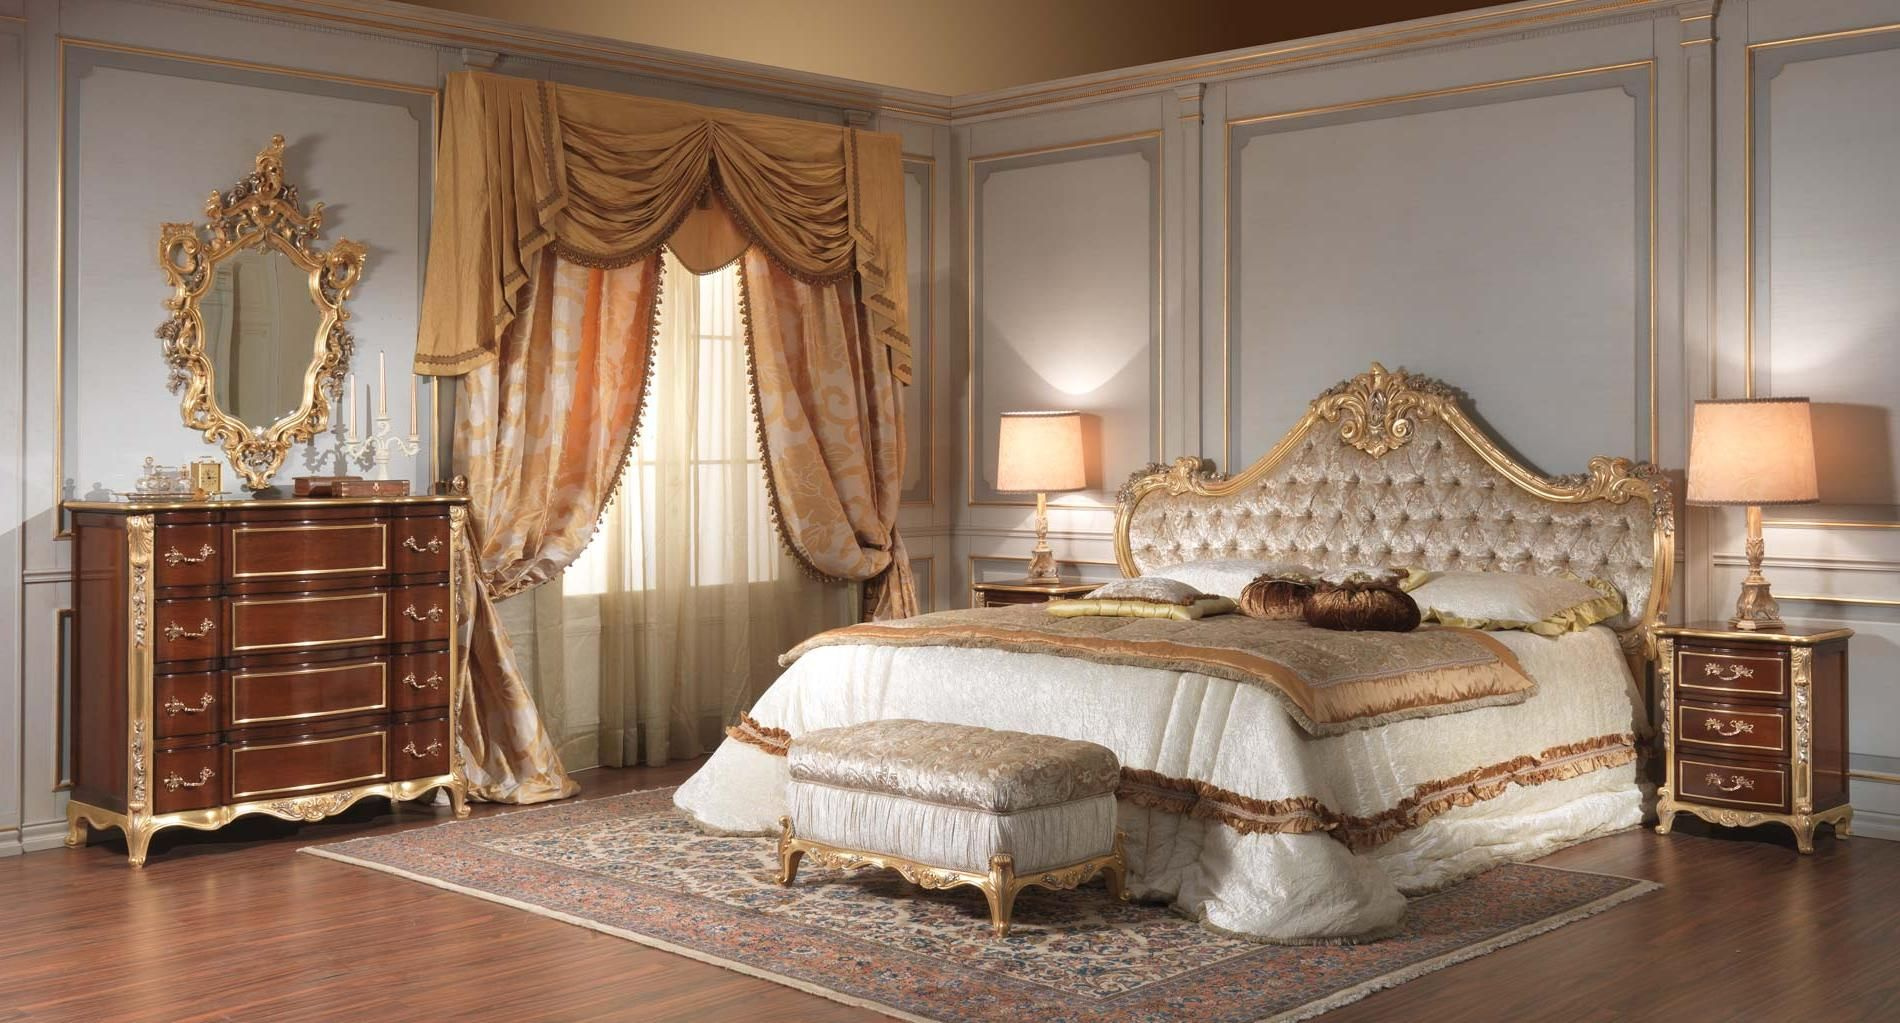 Victorian Master Bedroom With Luxury Furniture Plus Asian Carpet Style Make Up Table